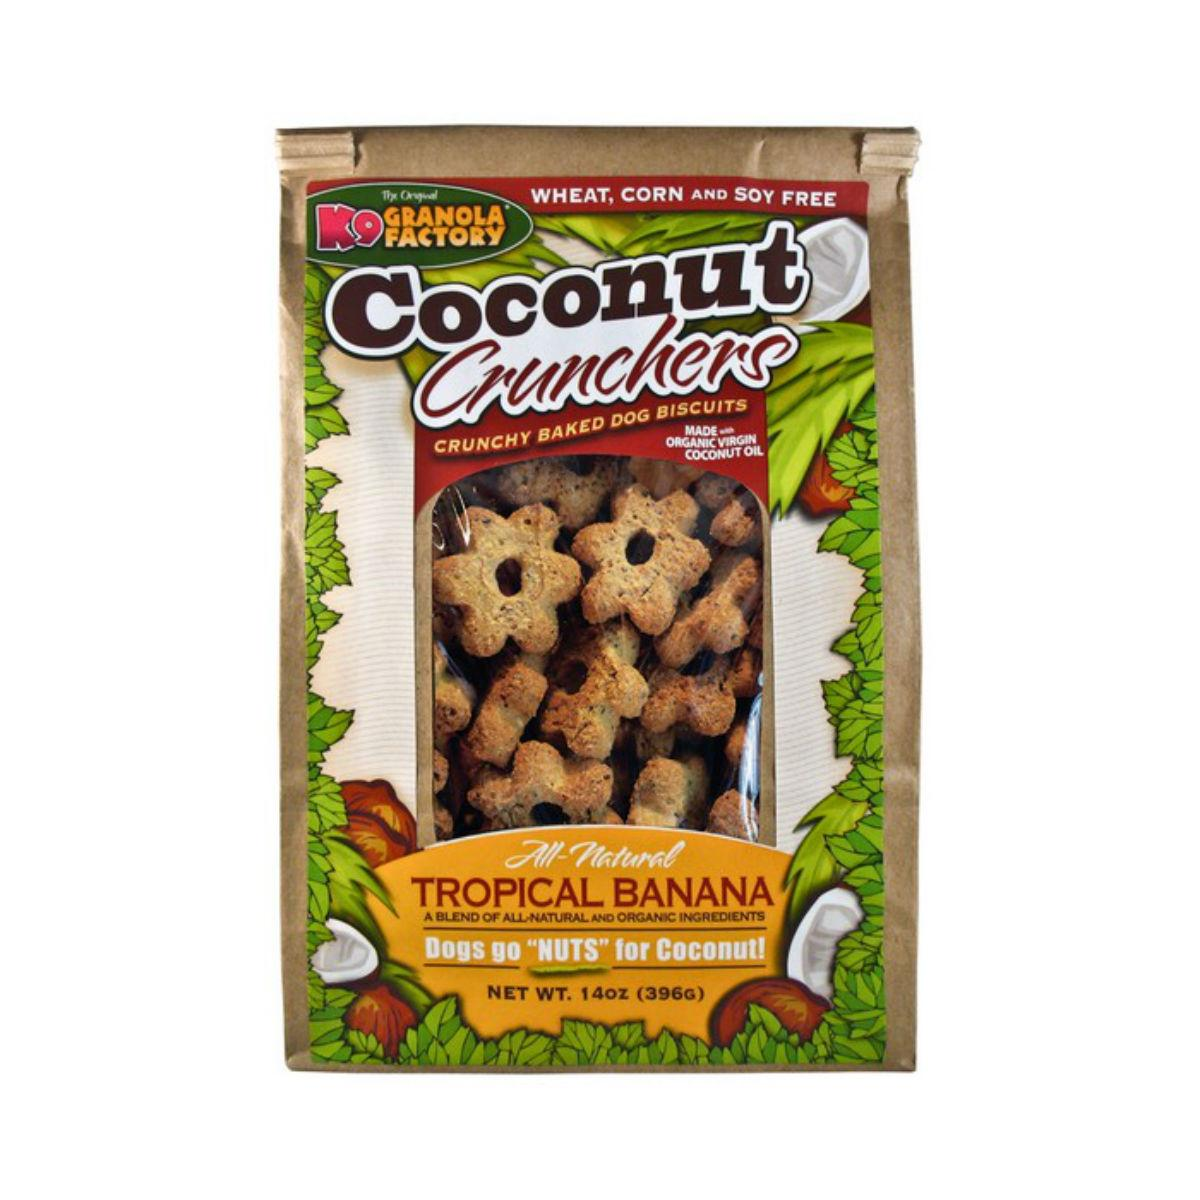 K9 Granola Factory Coconut Crunchers Dog Treat - Tropical Banana